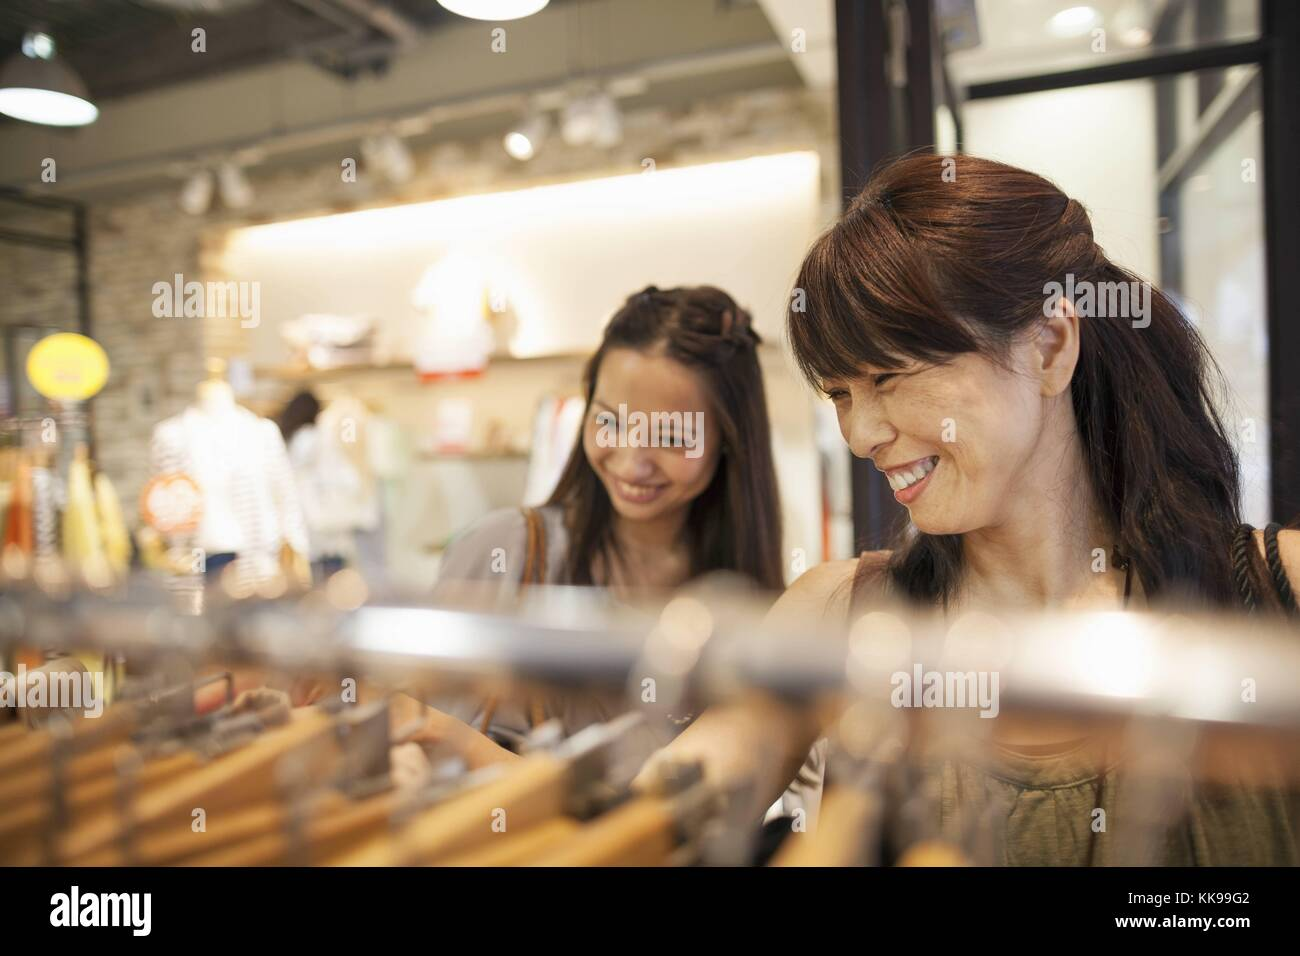 Mother and daughter on a shopping trip. | usage worldwide, Royalty free: For comercial usage price on demand. - Stock Image